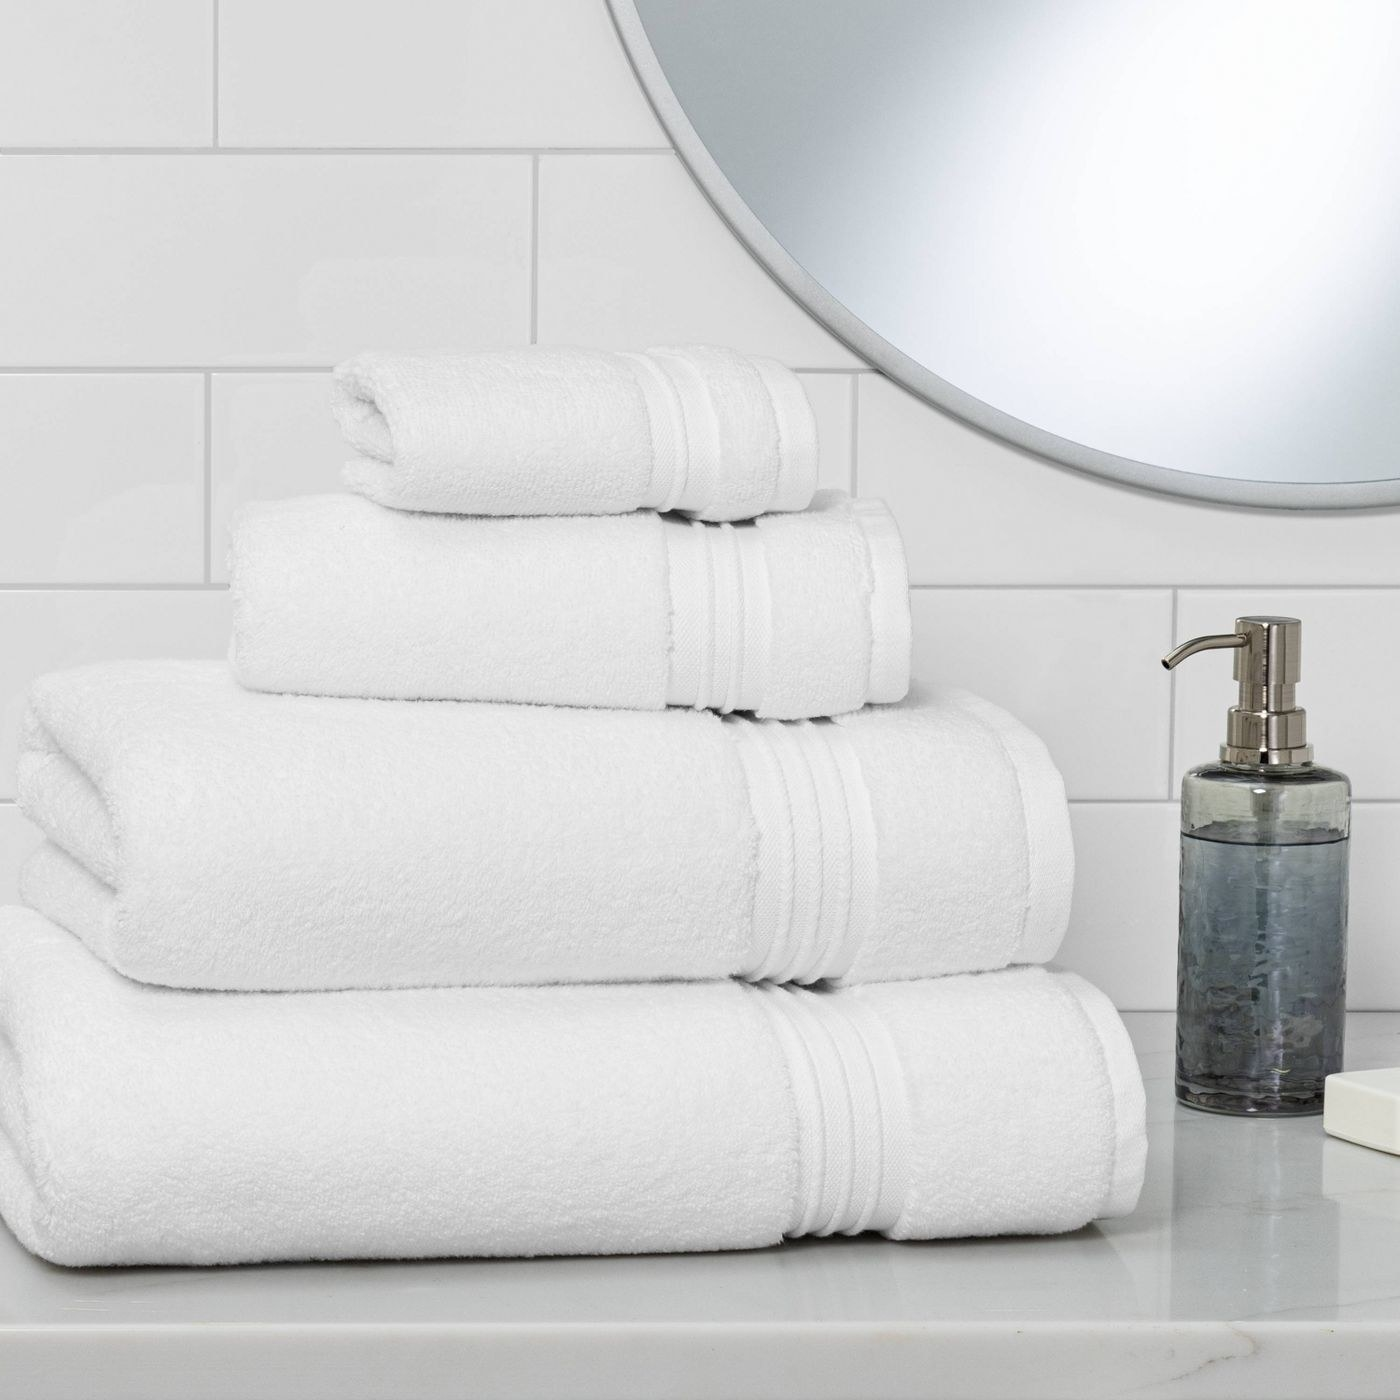 The bath towels in various sizes